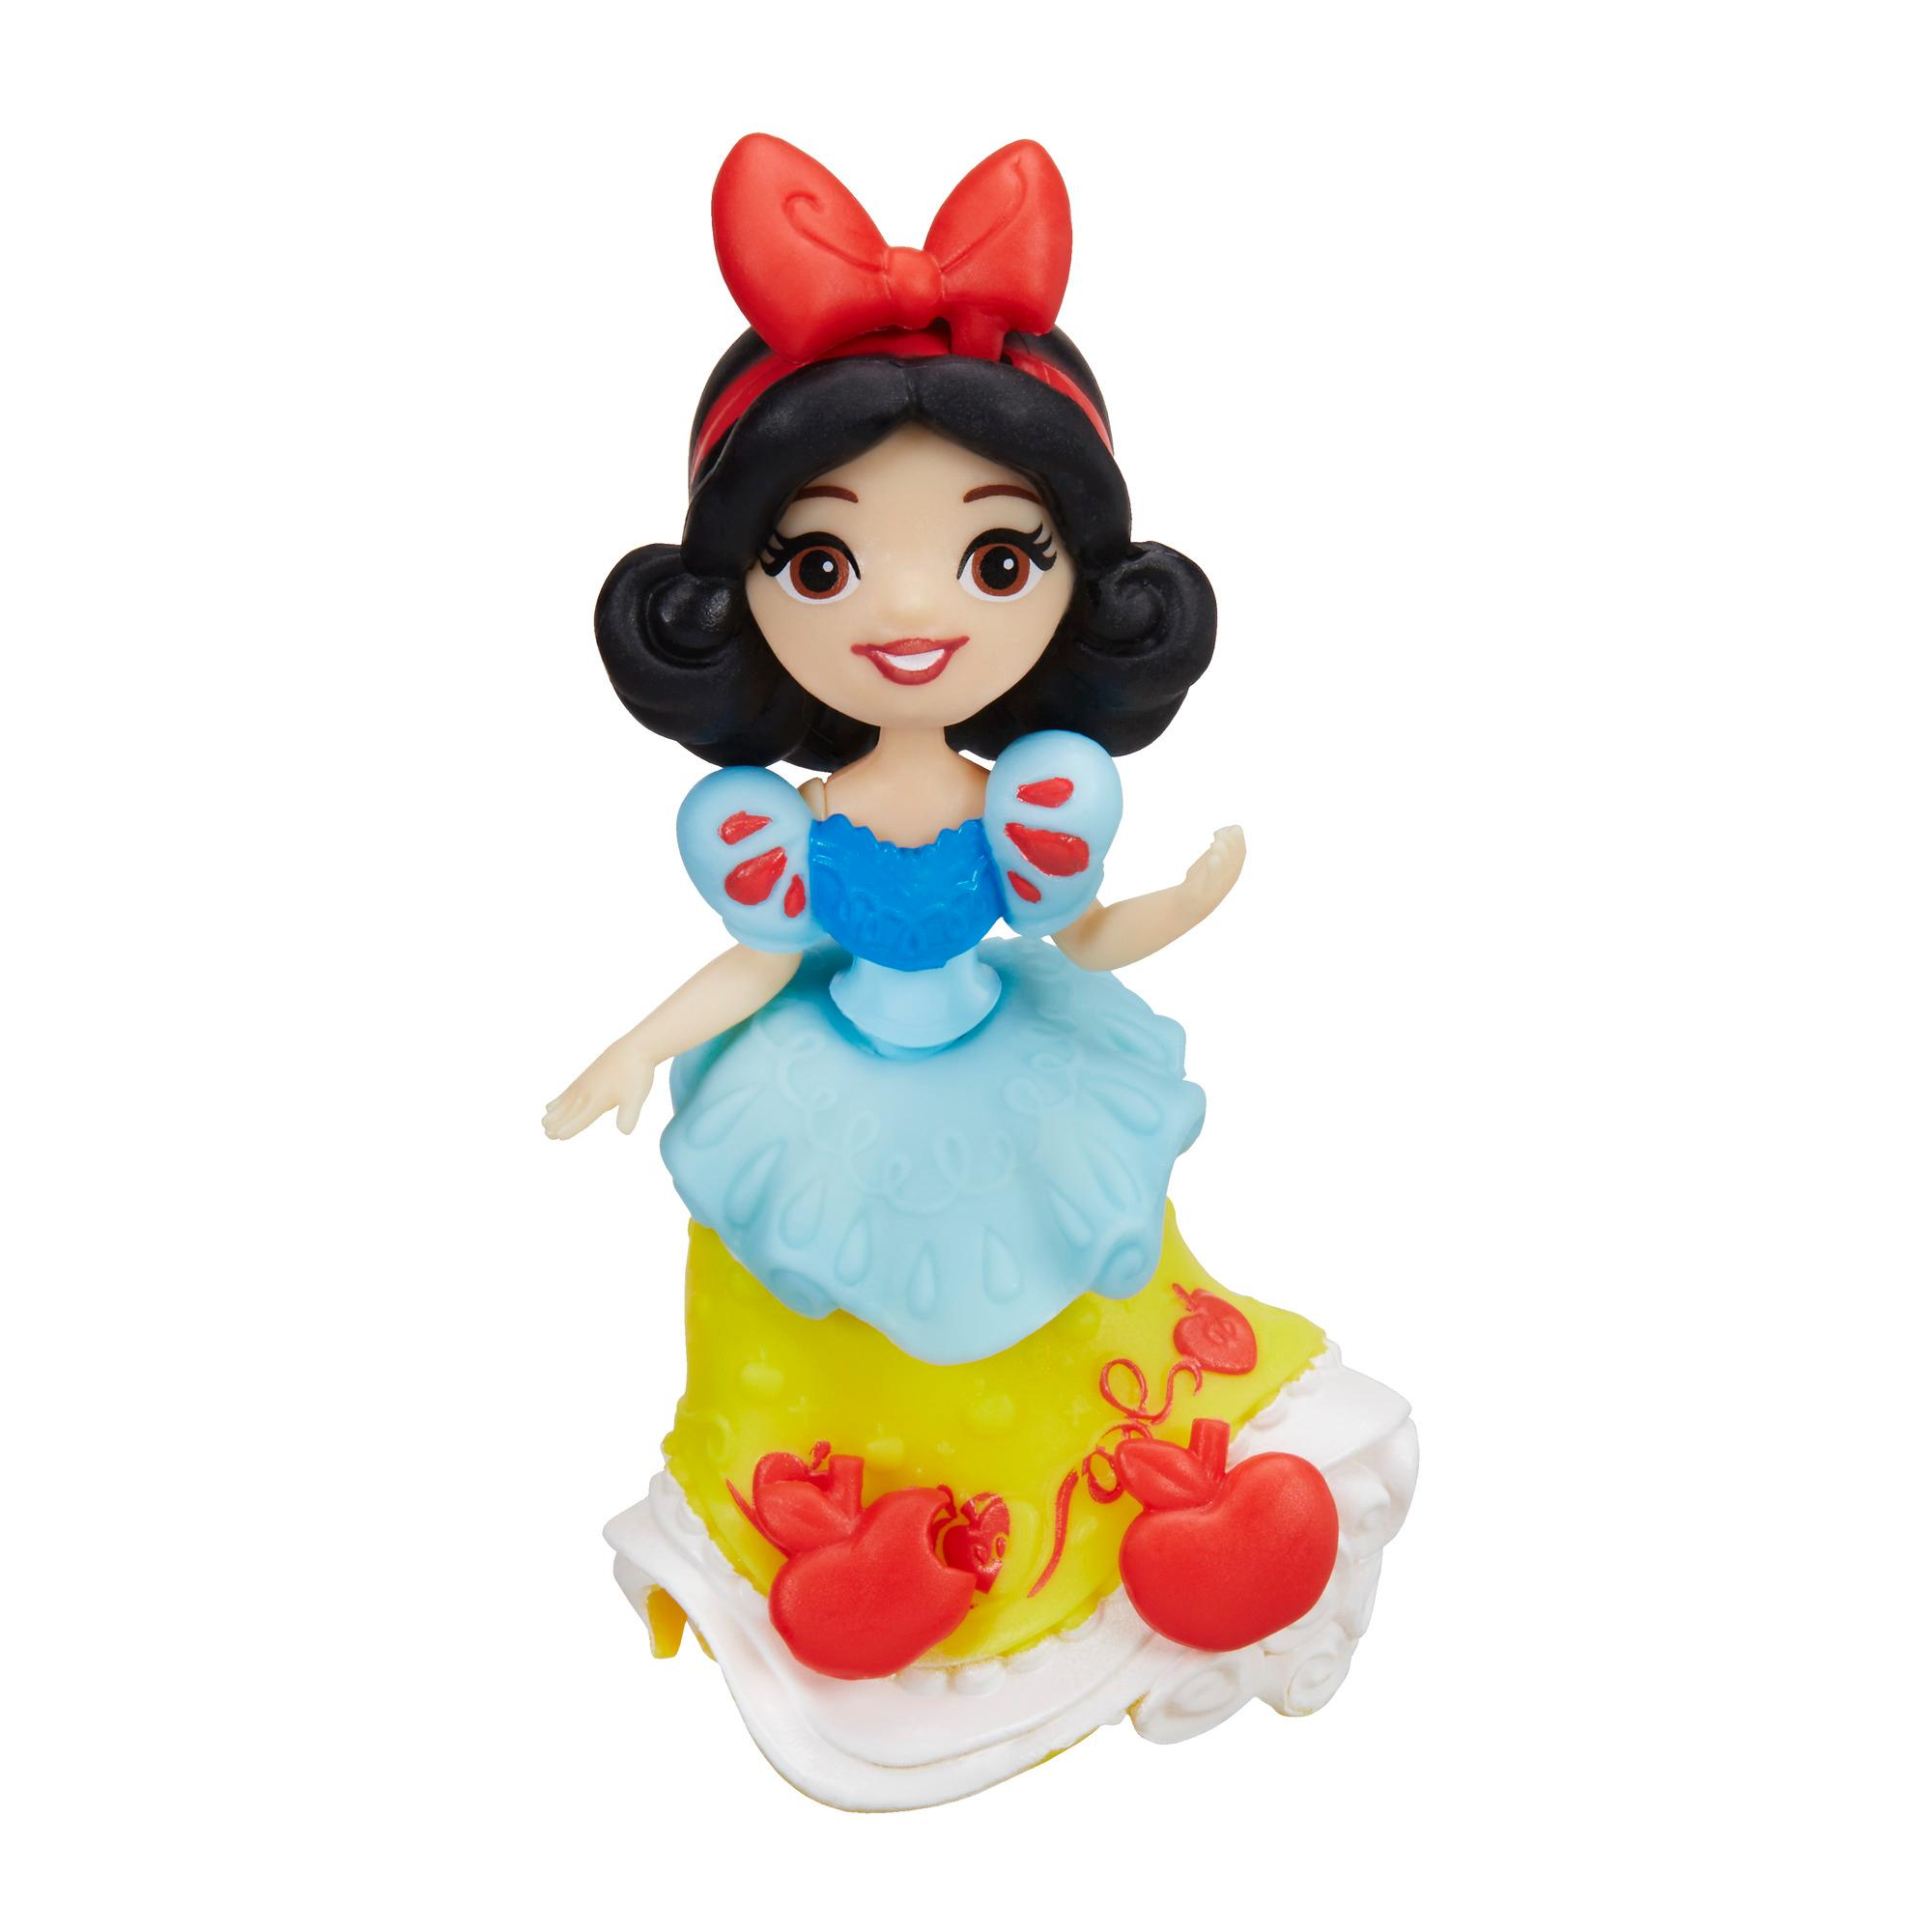 Disney Princess Little Kingdom Classic Snow White